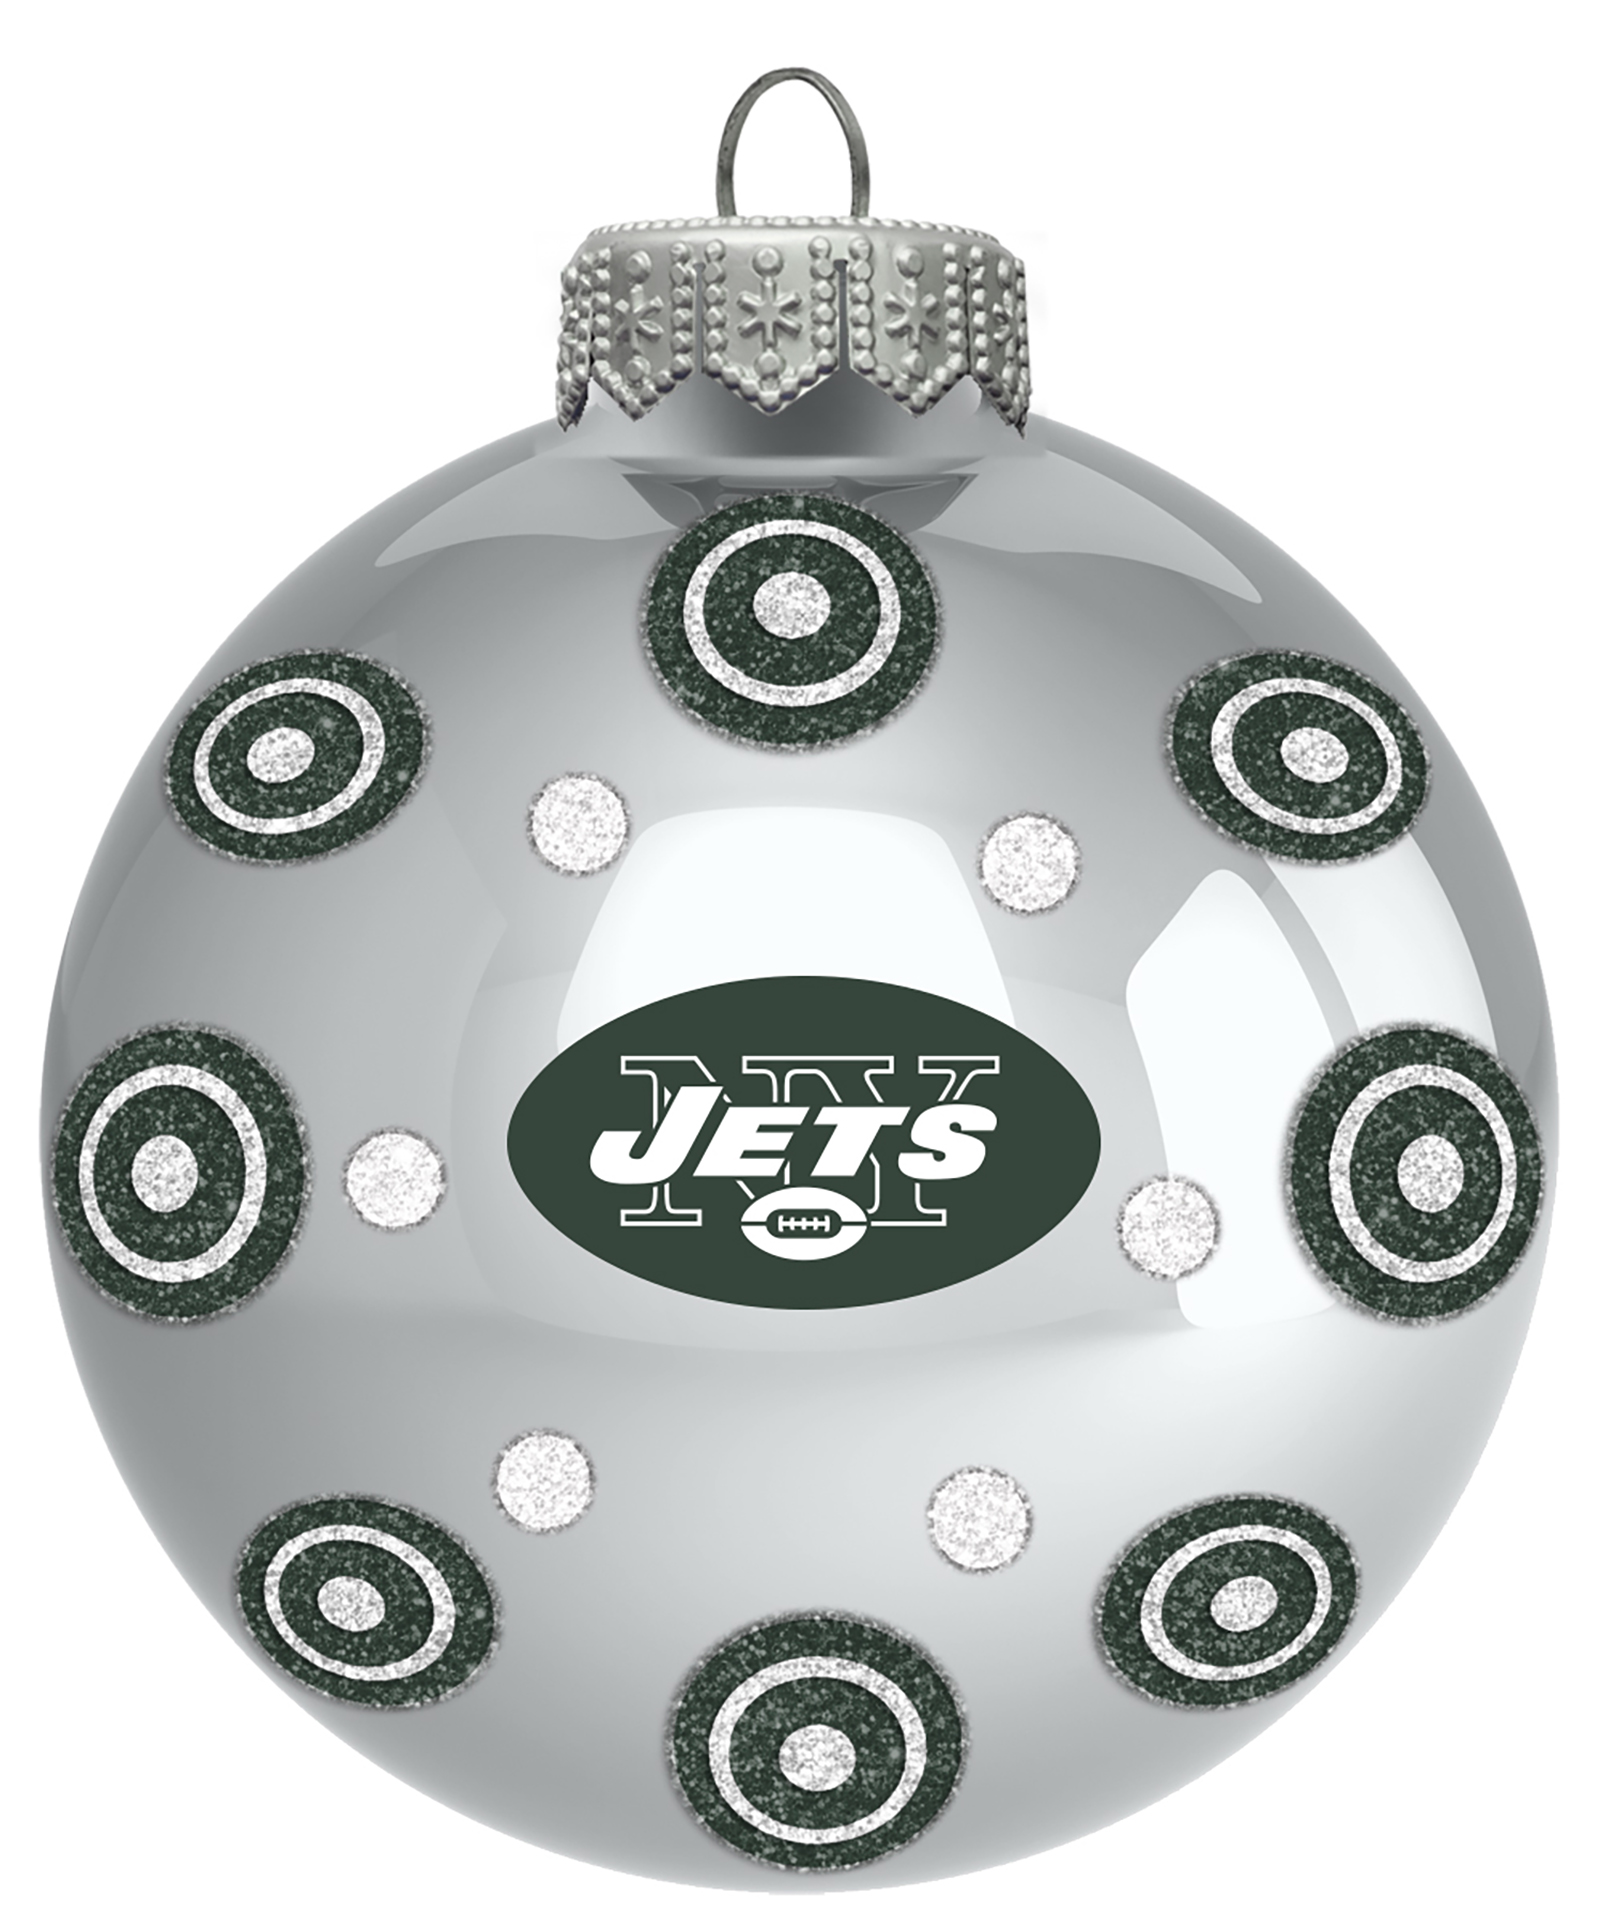 NFL Ball Ornament w/ Dots - New York Jets PartNumber: 046W008611098001P KsnValue: 046W008611098001 MfgPartNumber: NHL-SLB-1885K5